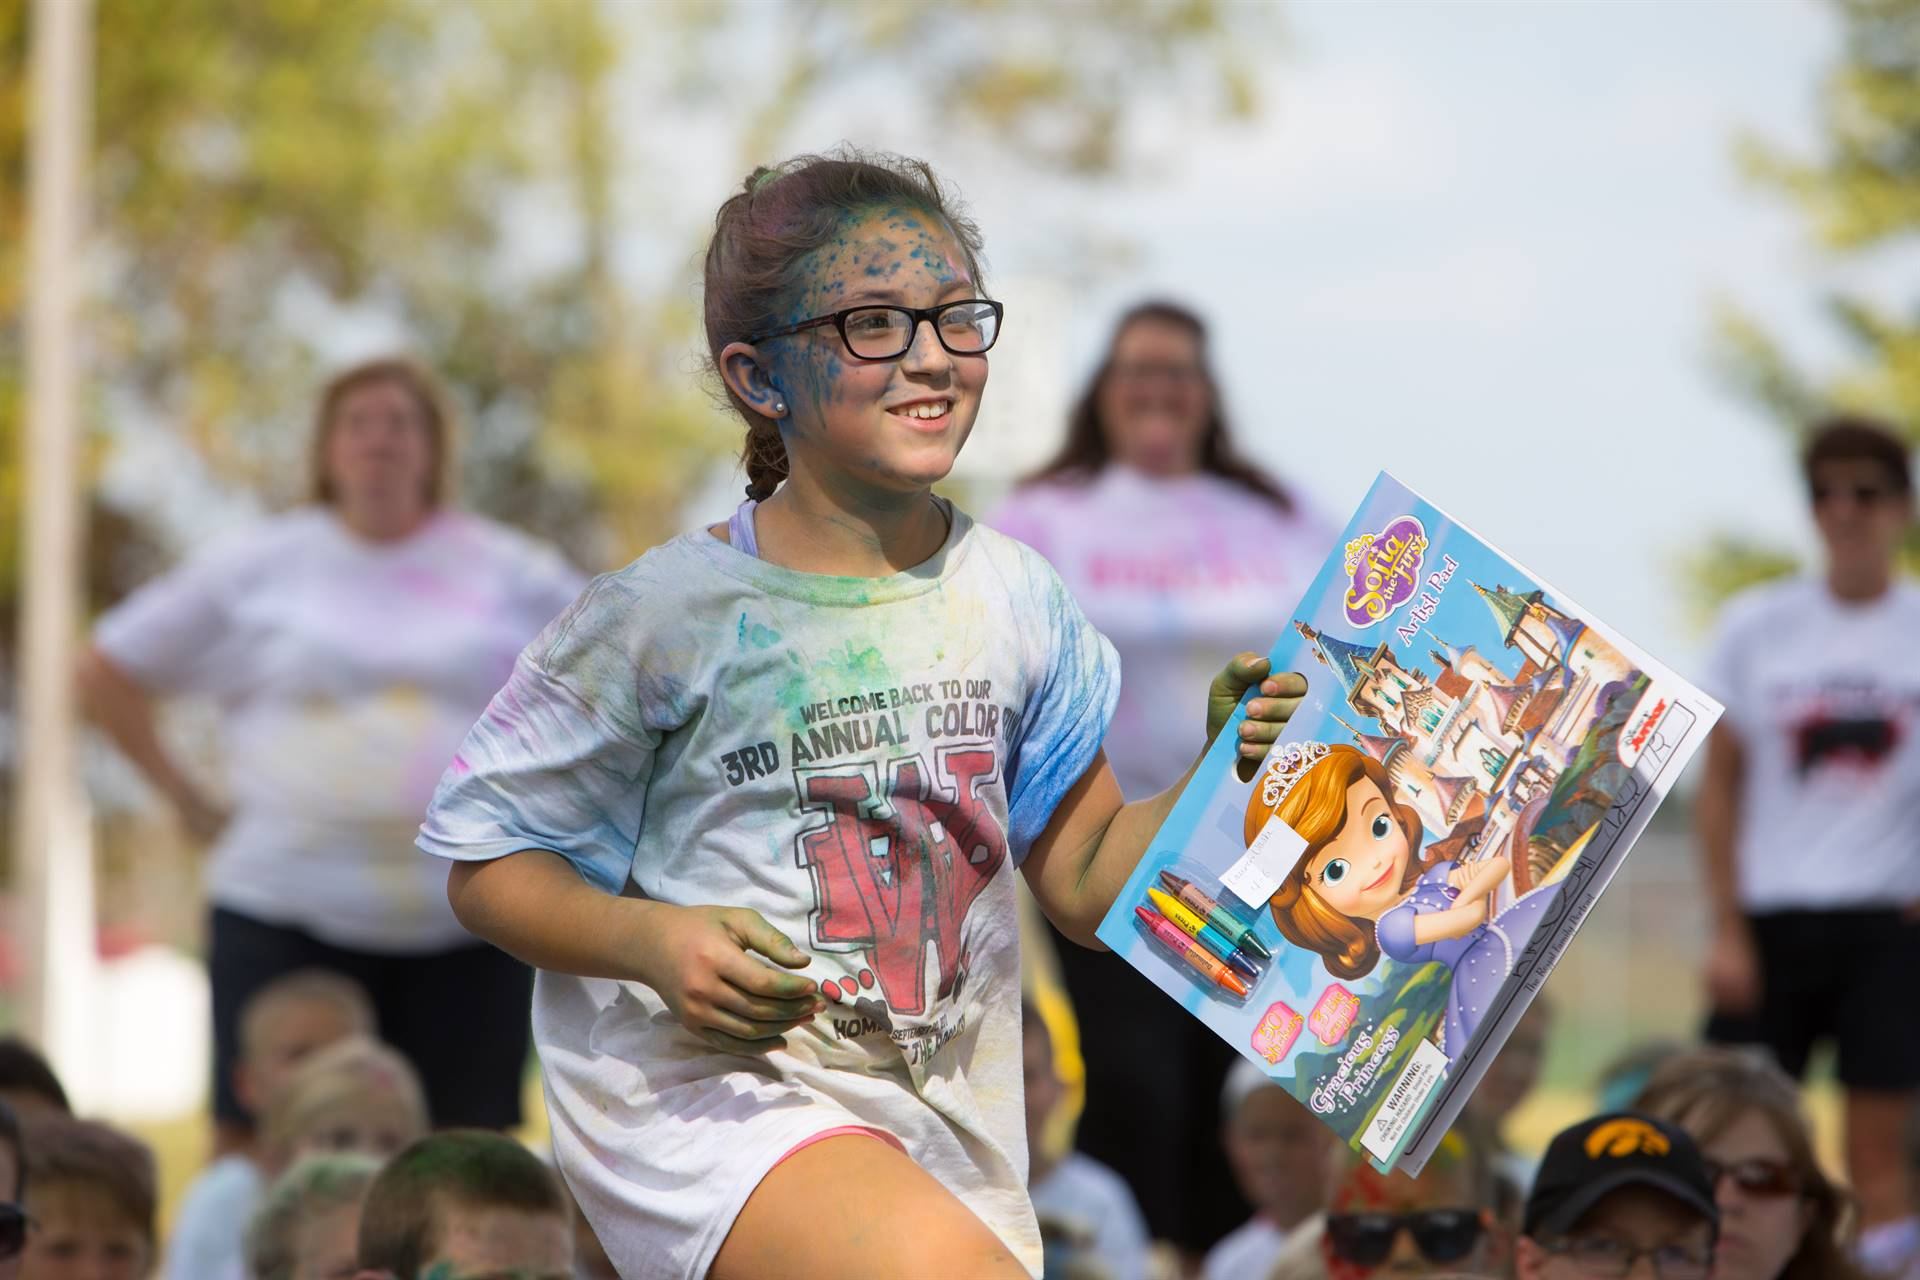 Girl with prize after color run